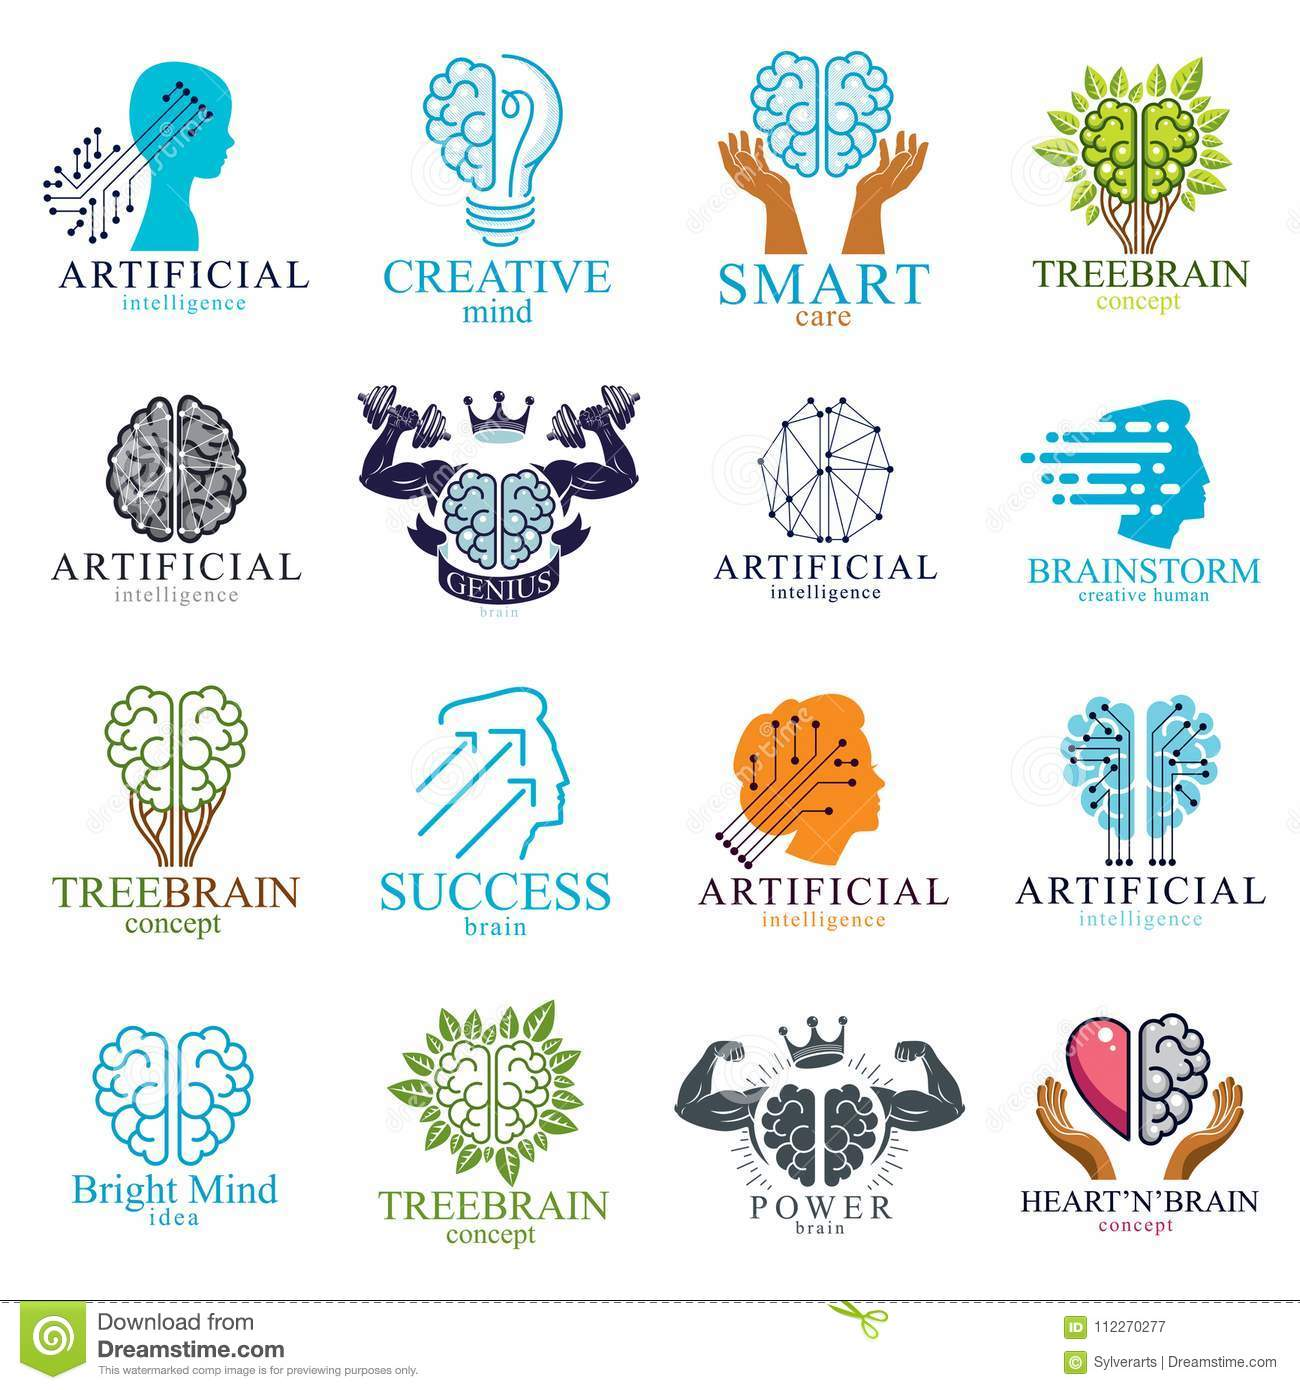 Brain and intelligence vector icons or logos concepts set. Artificial Intelligence, Bright Mind, Brain Training, Feelings soul